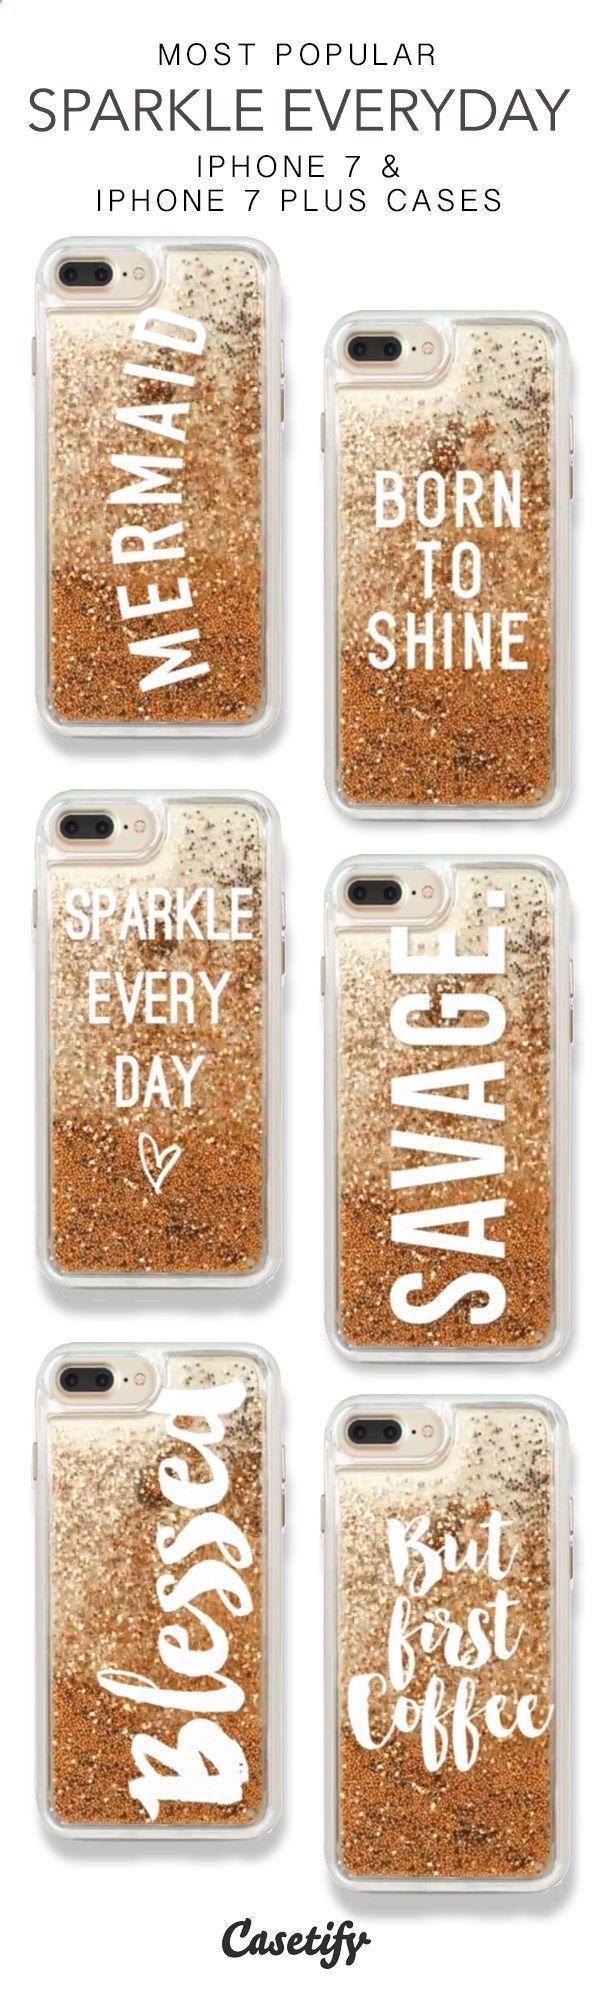 Phone Cases - Most Popular Sparkle Everyday iPhone 7 Cases & iPhone 7 Plus Cases. More glitter iPhone case here > www.casetify.com/... #iphone8pluscase,